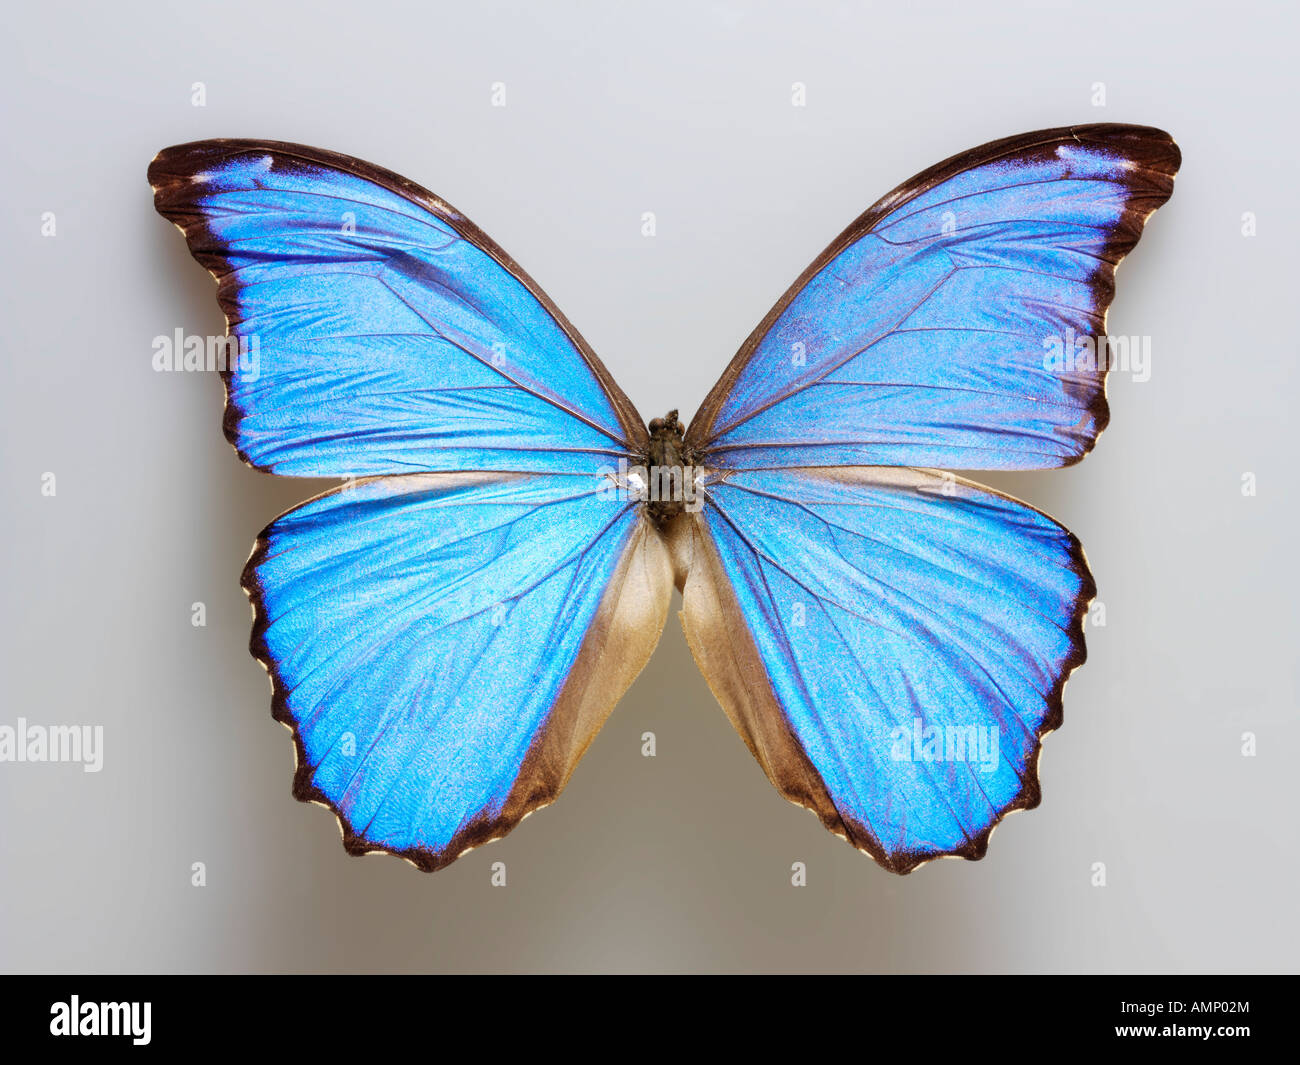 top shot plan extreme close up view of a Menelaus blue morpho (Morpho menelaus)  butterfly, opened winged, against Stock Photo